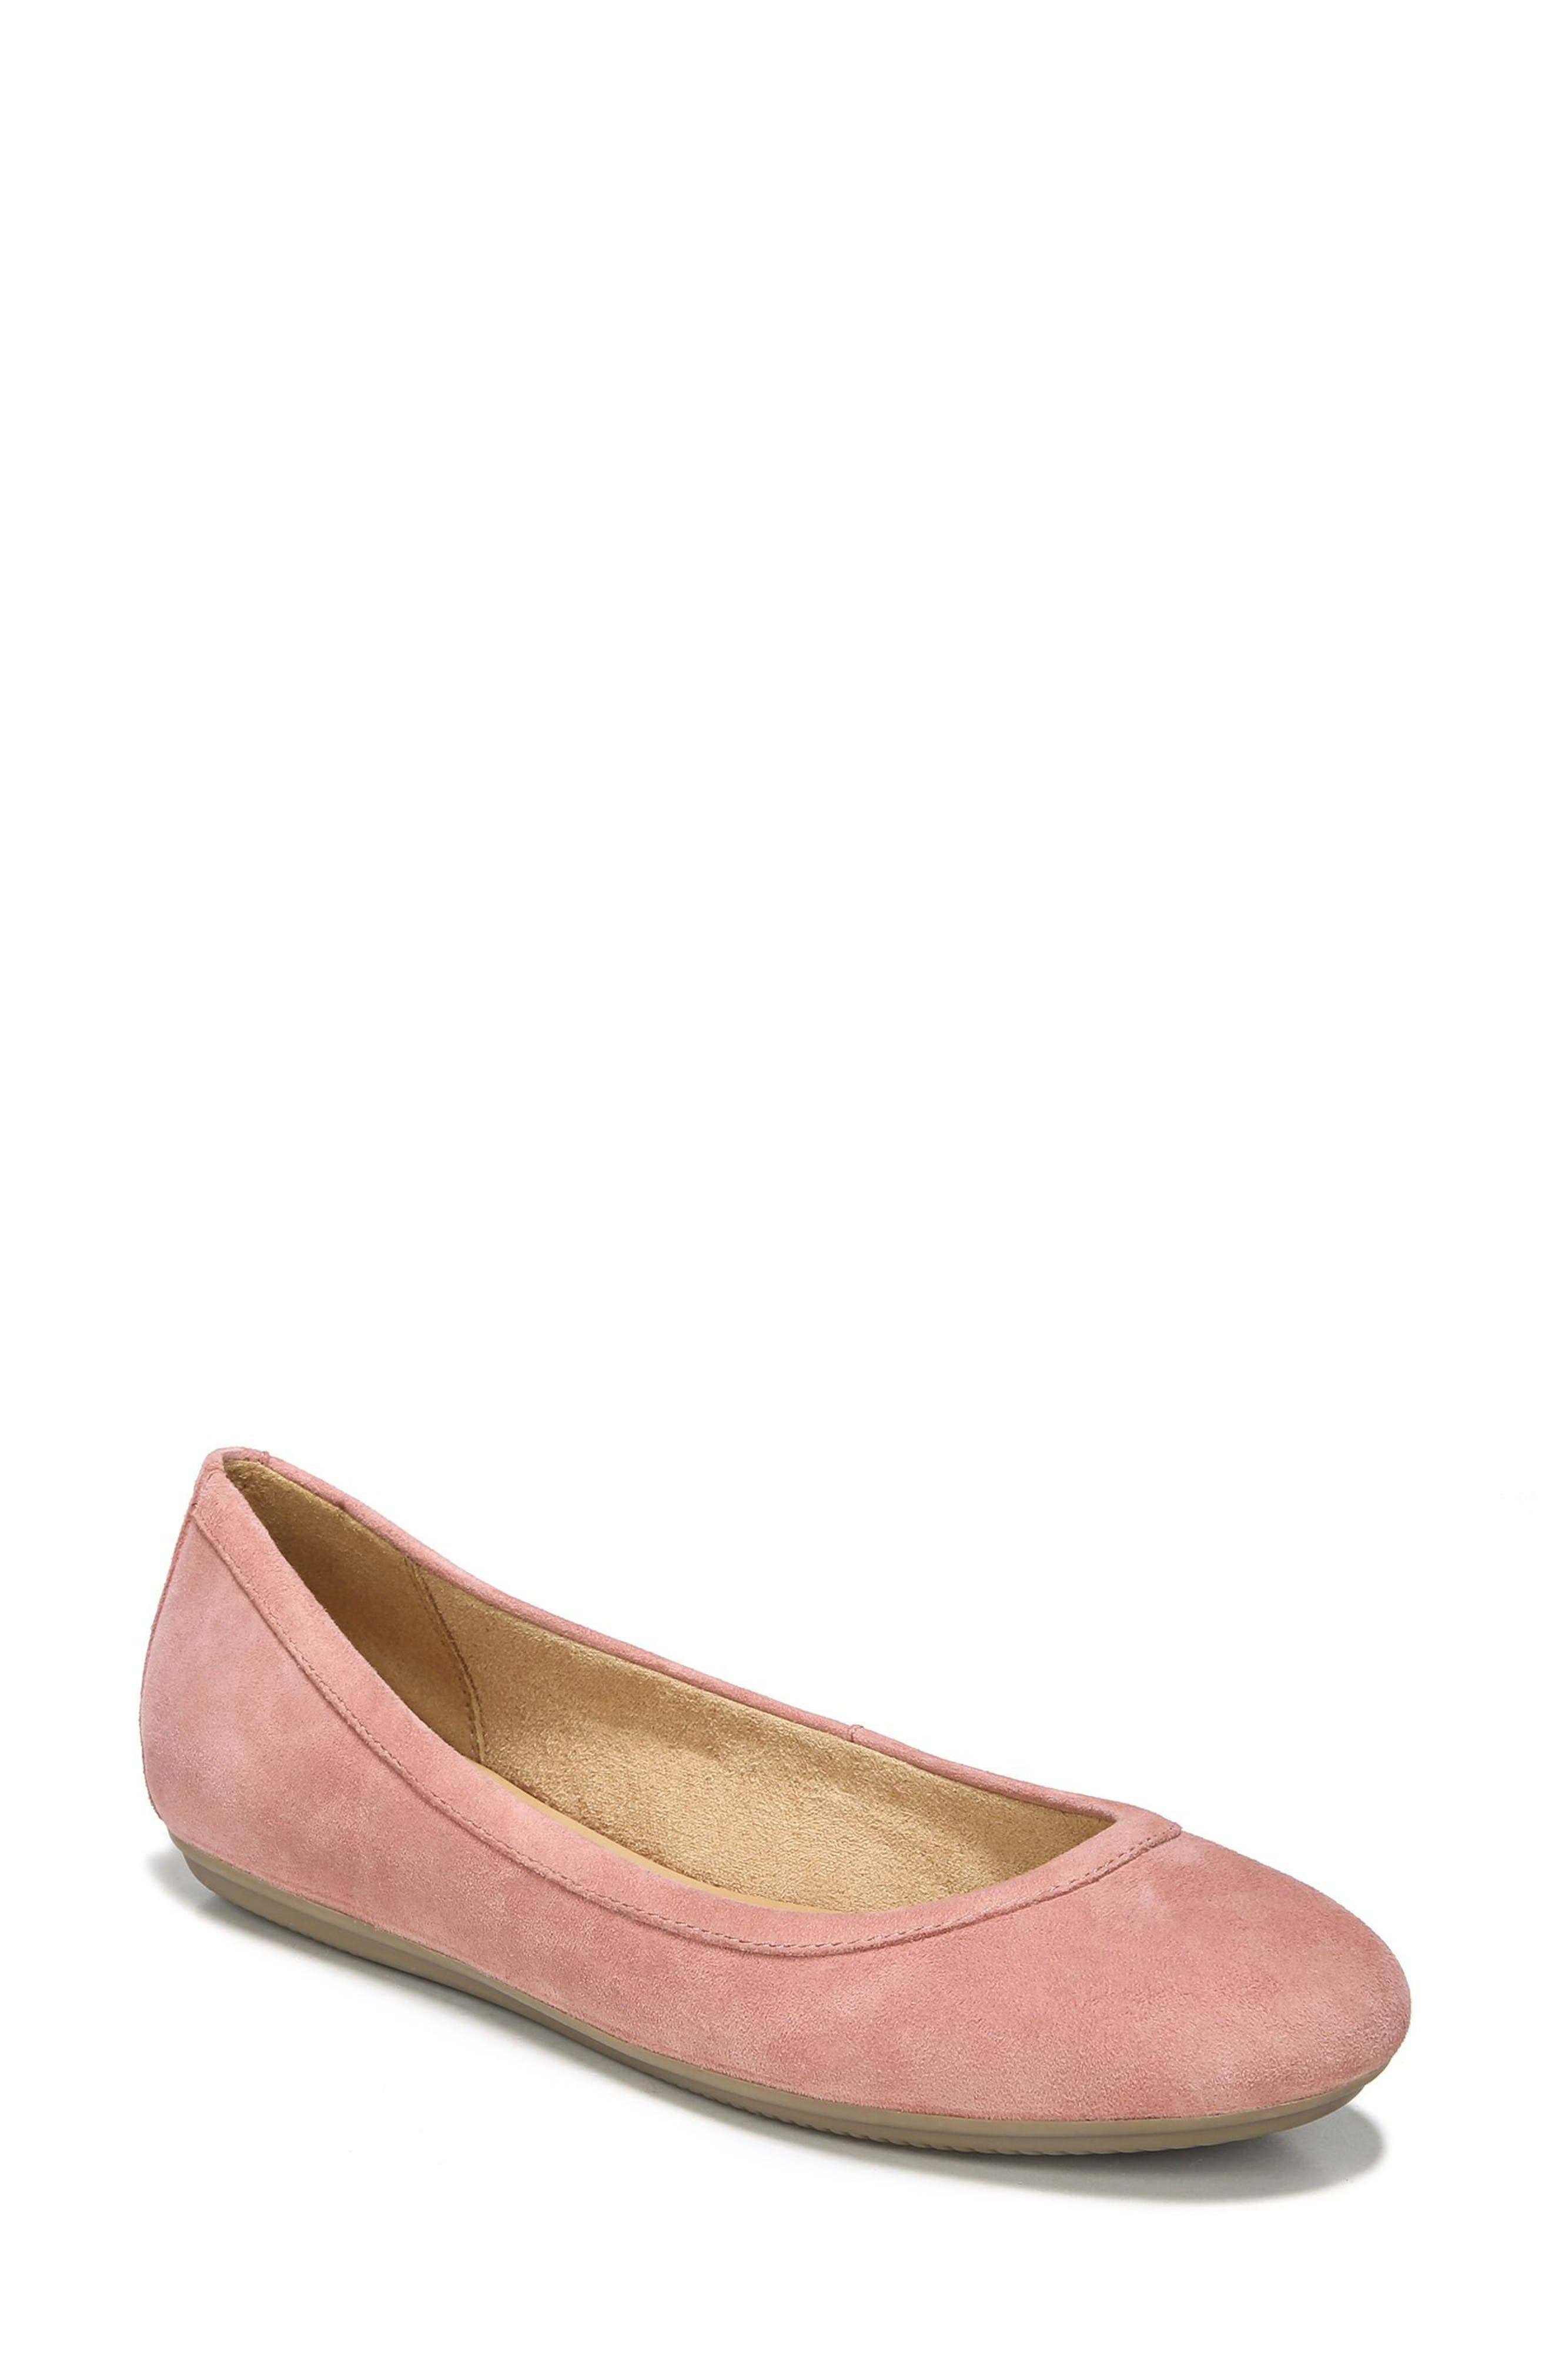 Brittany Ballet Flat,                             Main thumbnail 1, color,                             PEONY PINK SUEDE